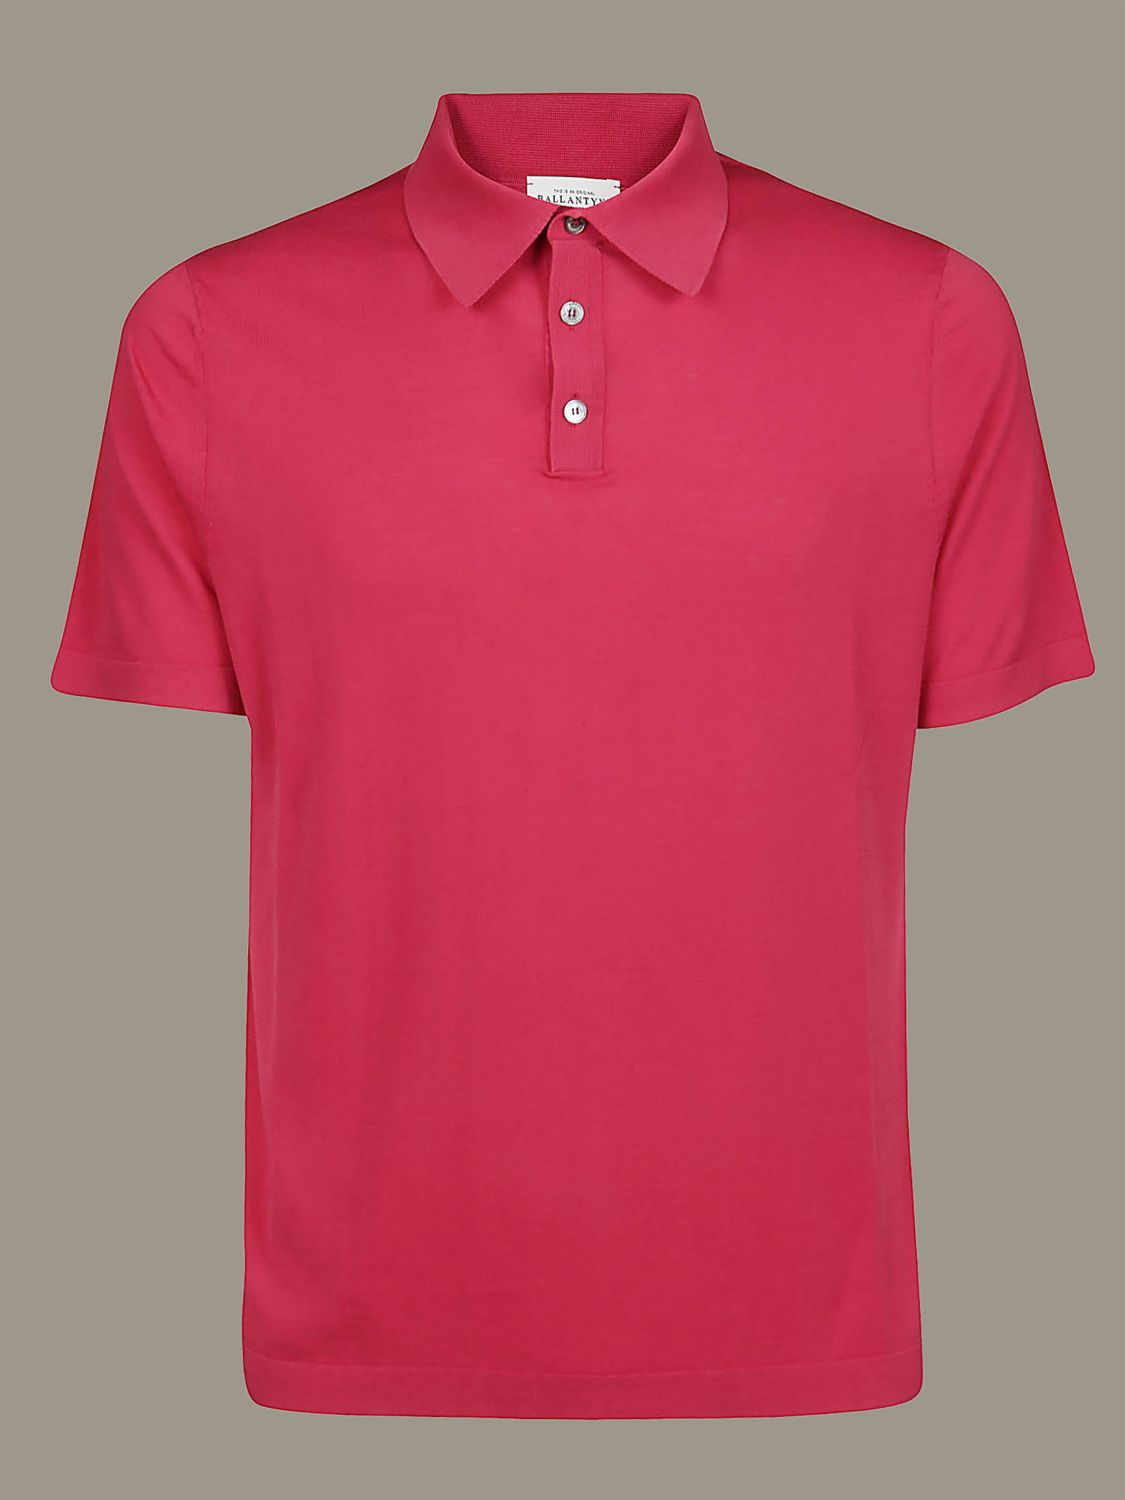 Polo shirt Ballantyne: Sweatshirt men Ballantyne red 1